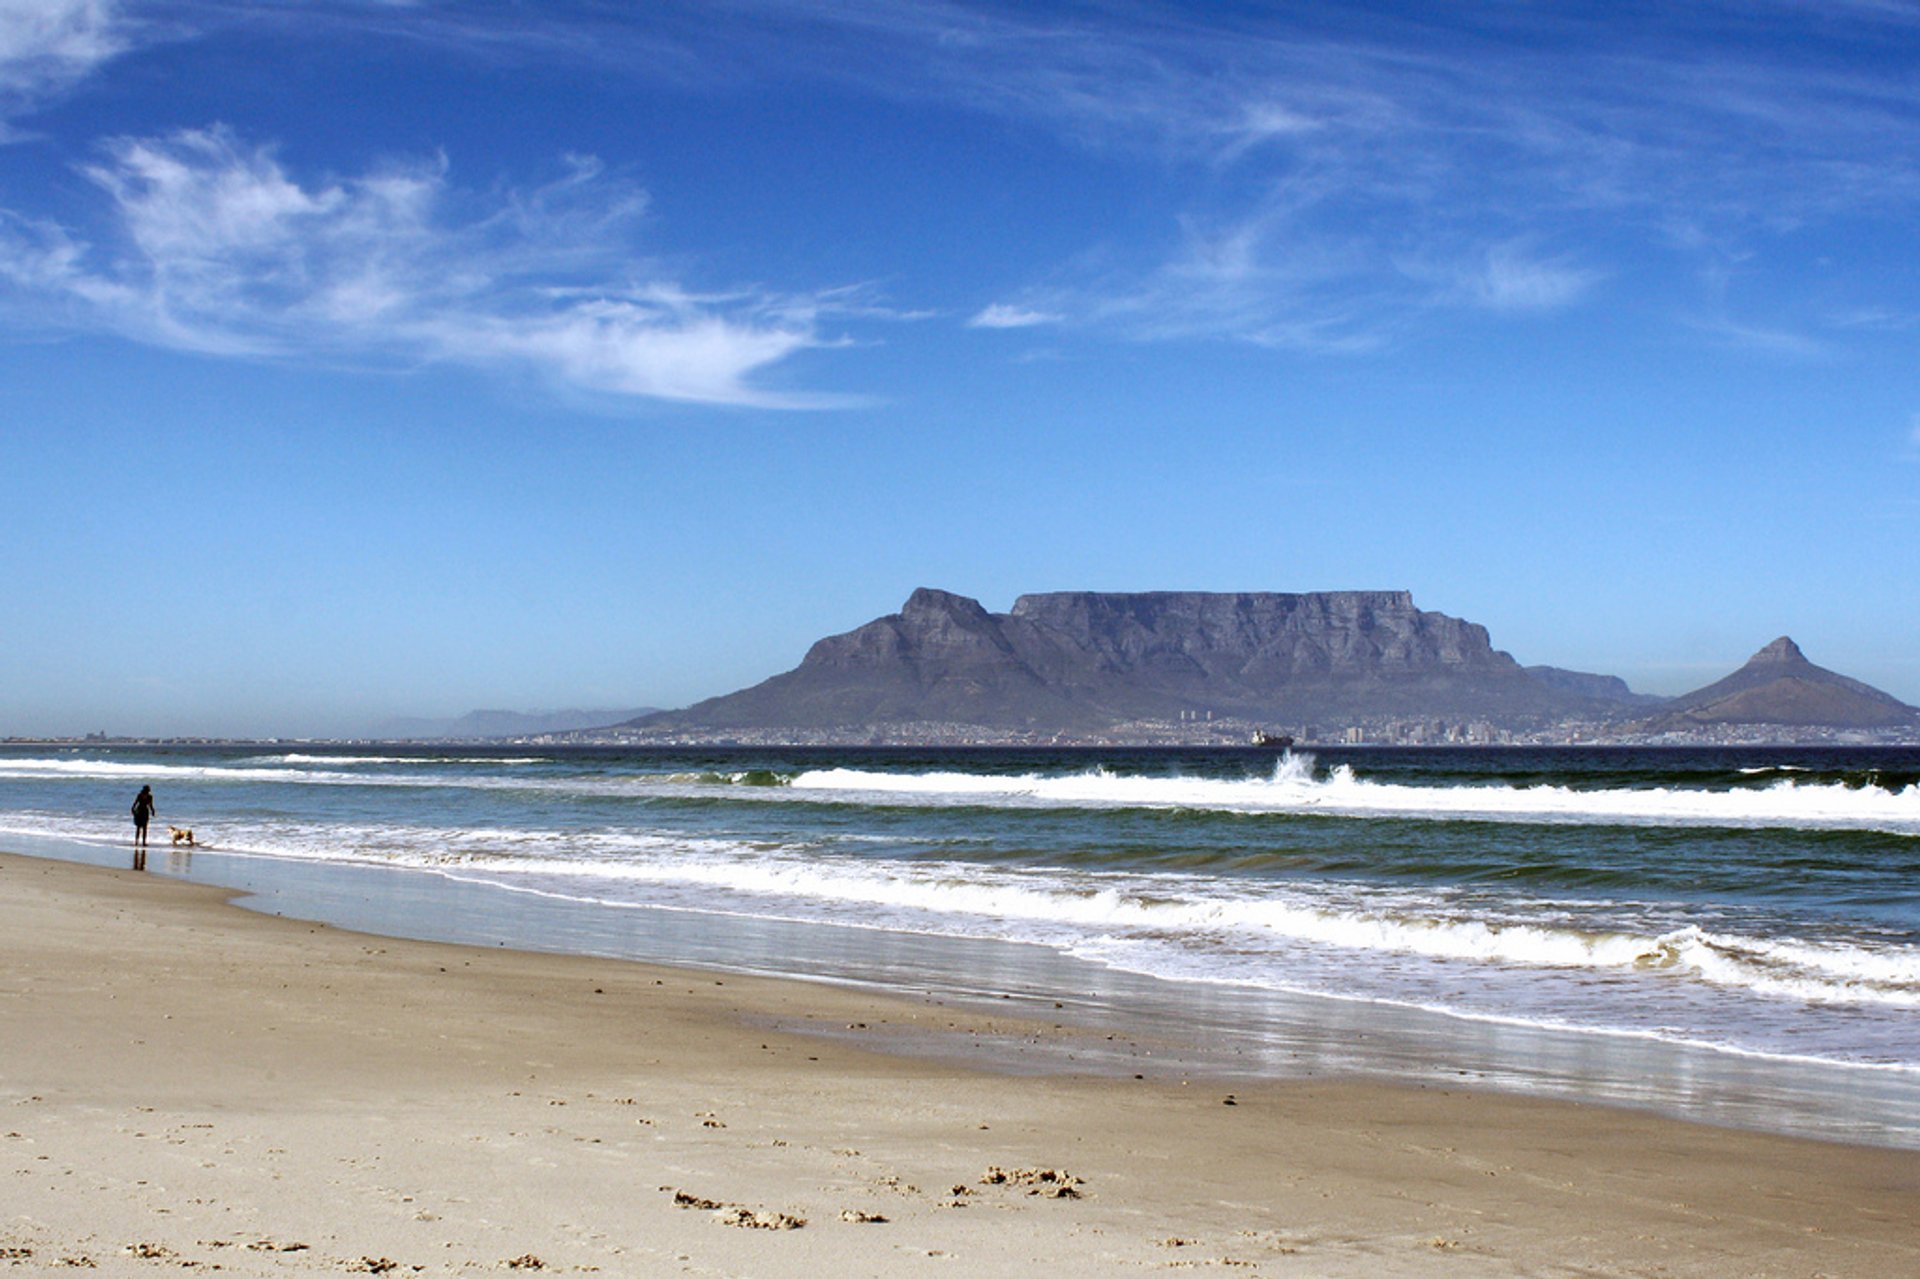 Beach Season in Cape Town 2020 - Best Time